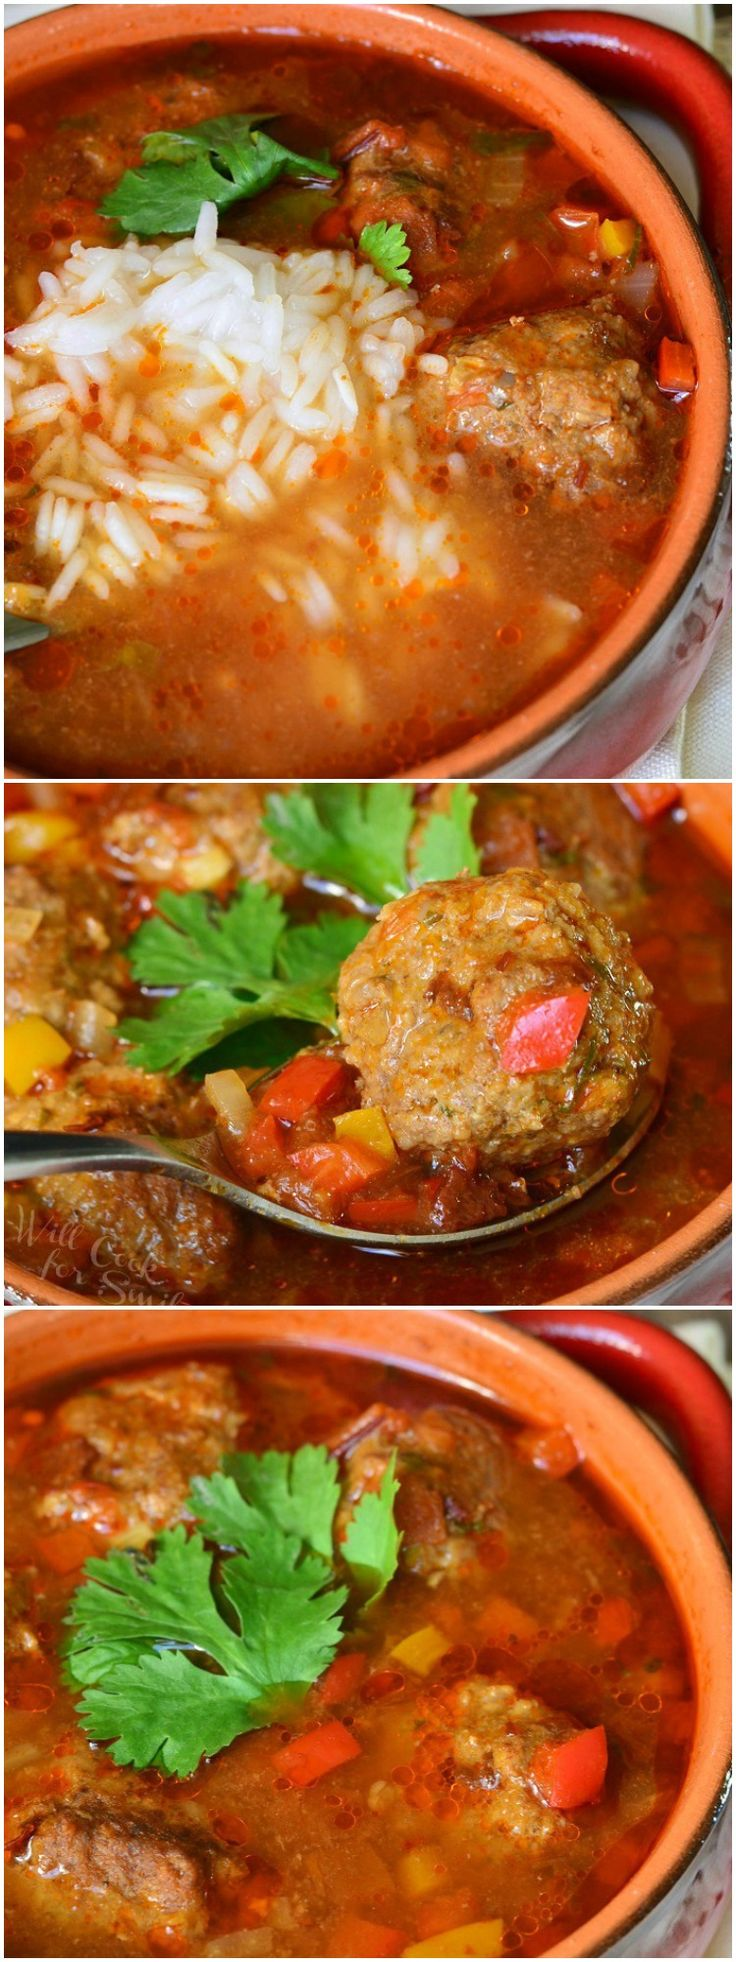 Mexican Meatballs Soup from willcookforsmiles.com #beef #soup